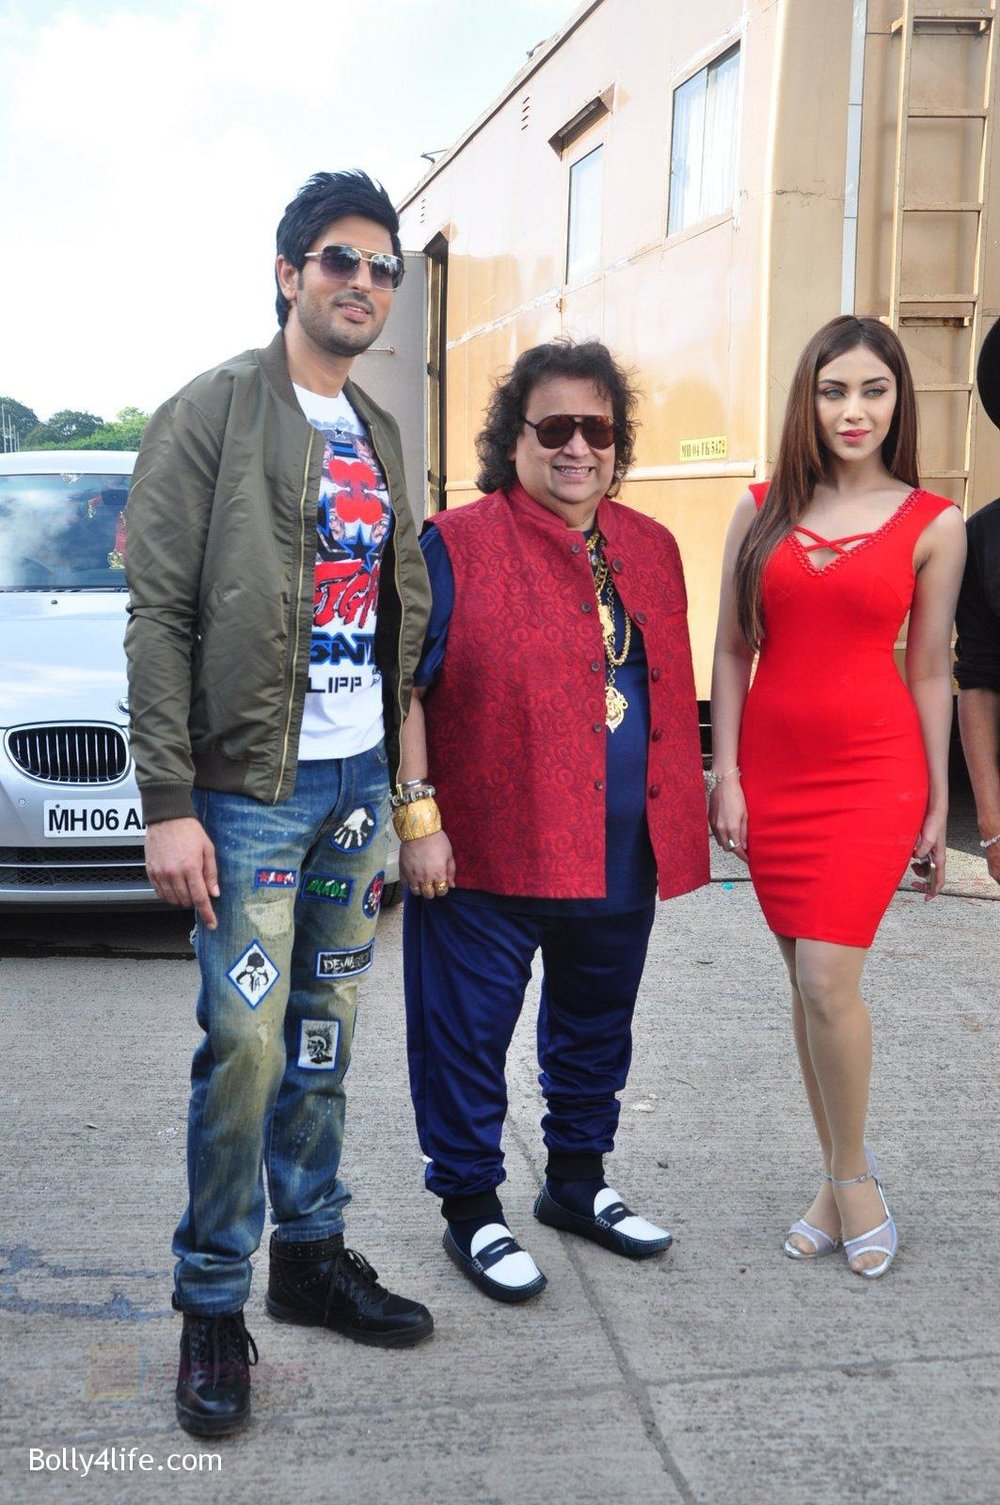 Bappi-Lahiri-Rishi-Bhutani-Angela-Krislinzki-on-location-of-film-Ramratan-on-12th-Sept-2016-.jpg